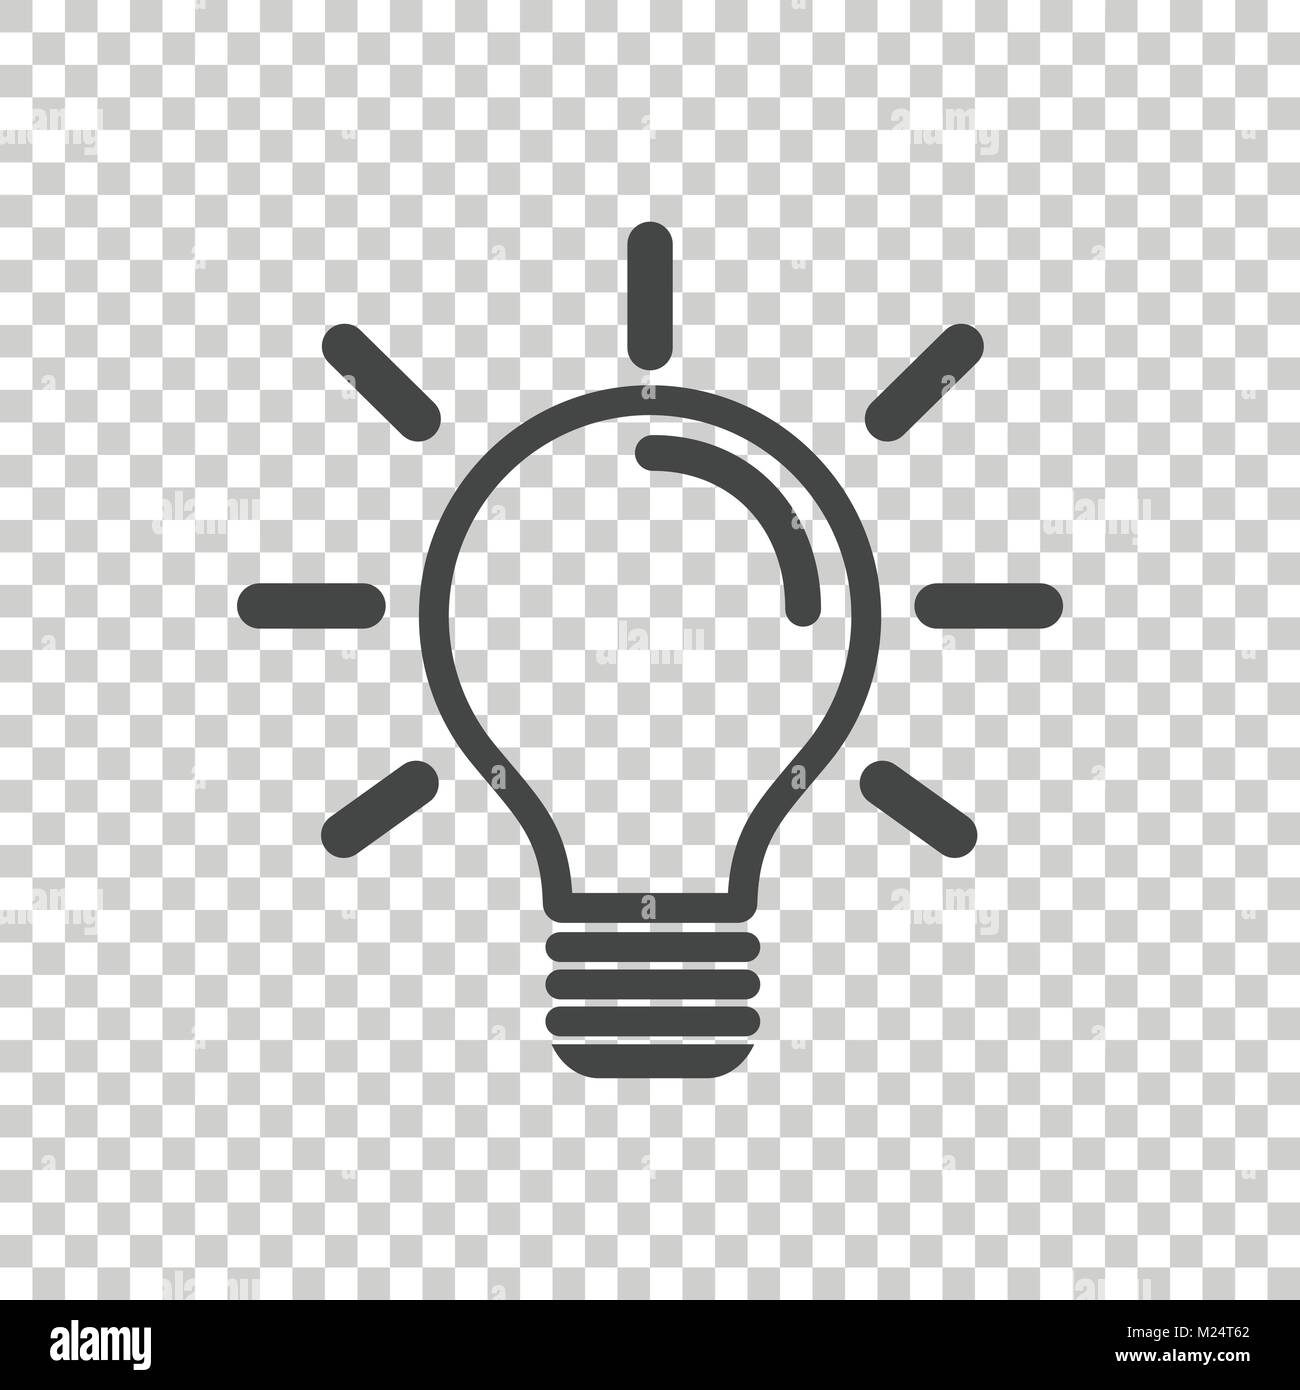 Halogen Lamp Icon In Flat Stockfotos & Halogen Lamp Icon In Flat ...